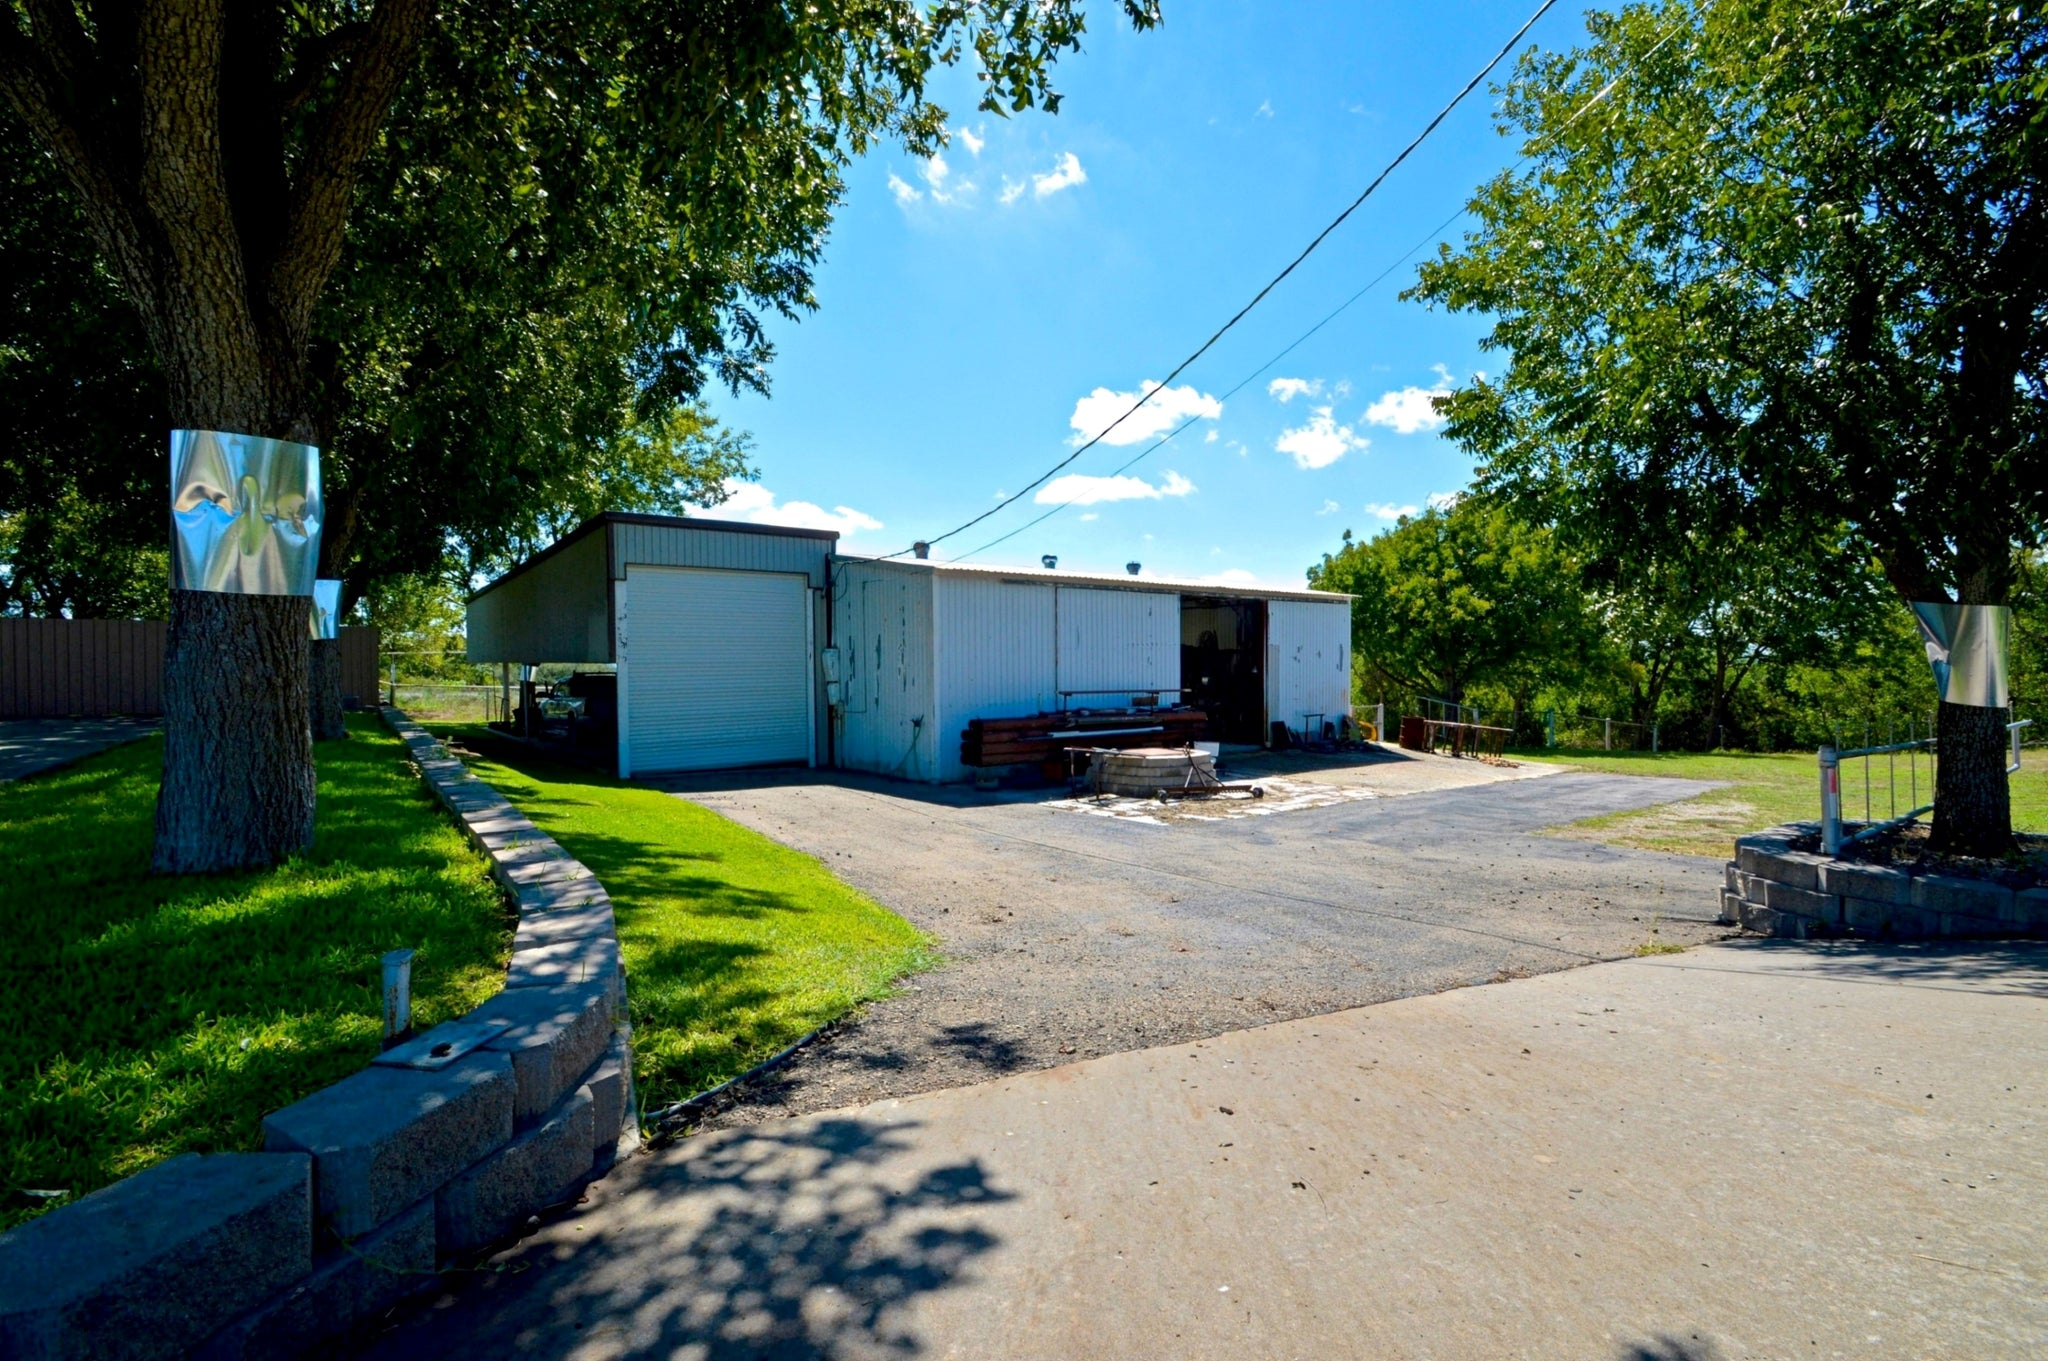 3 Bed 3 Bath House & Shop on 1+/- Acre in Goldthwaite, Tx for only $275,000